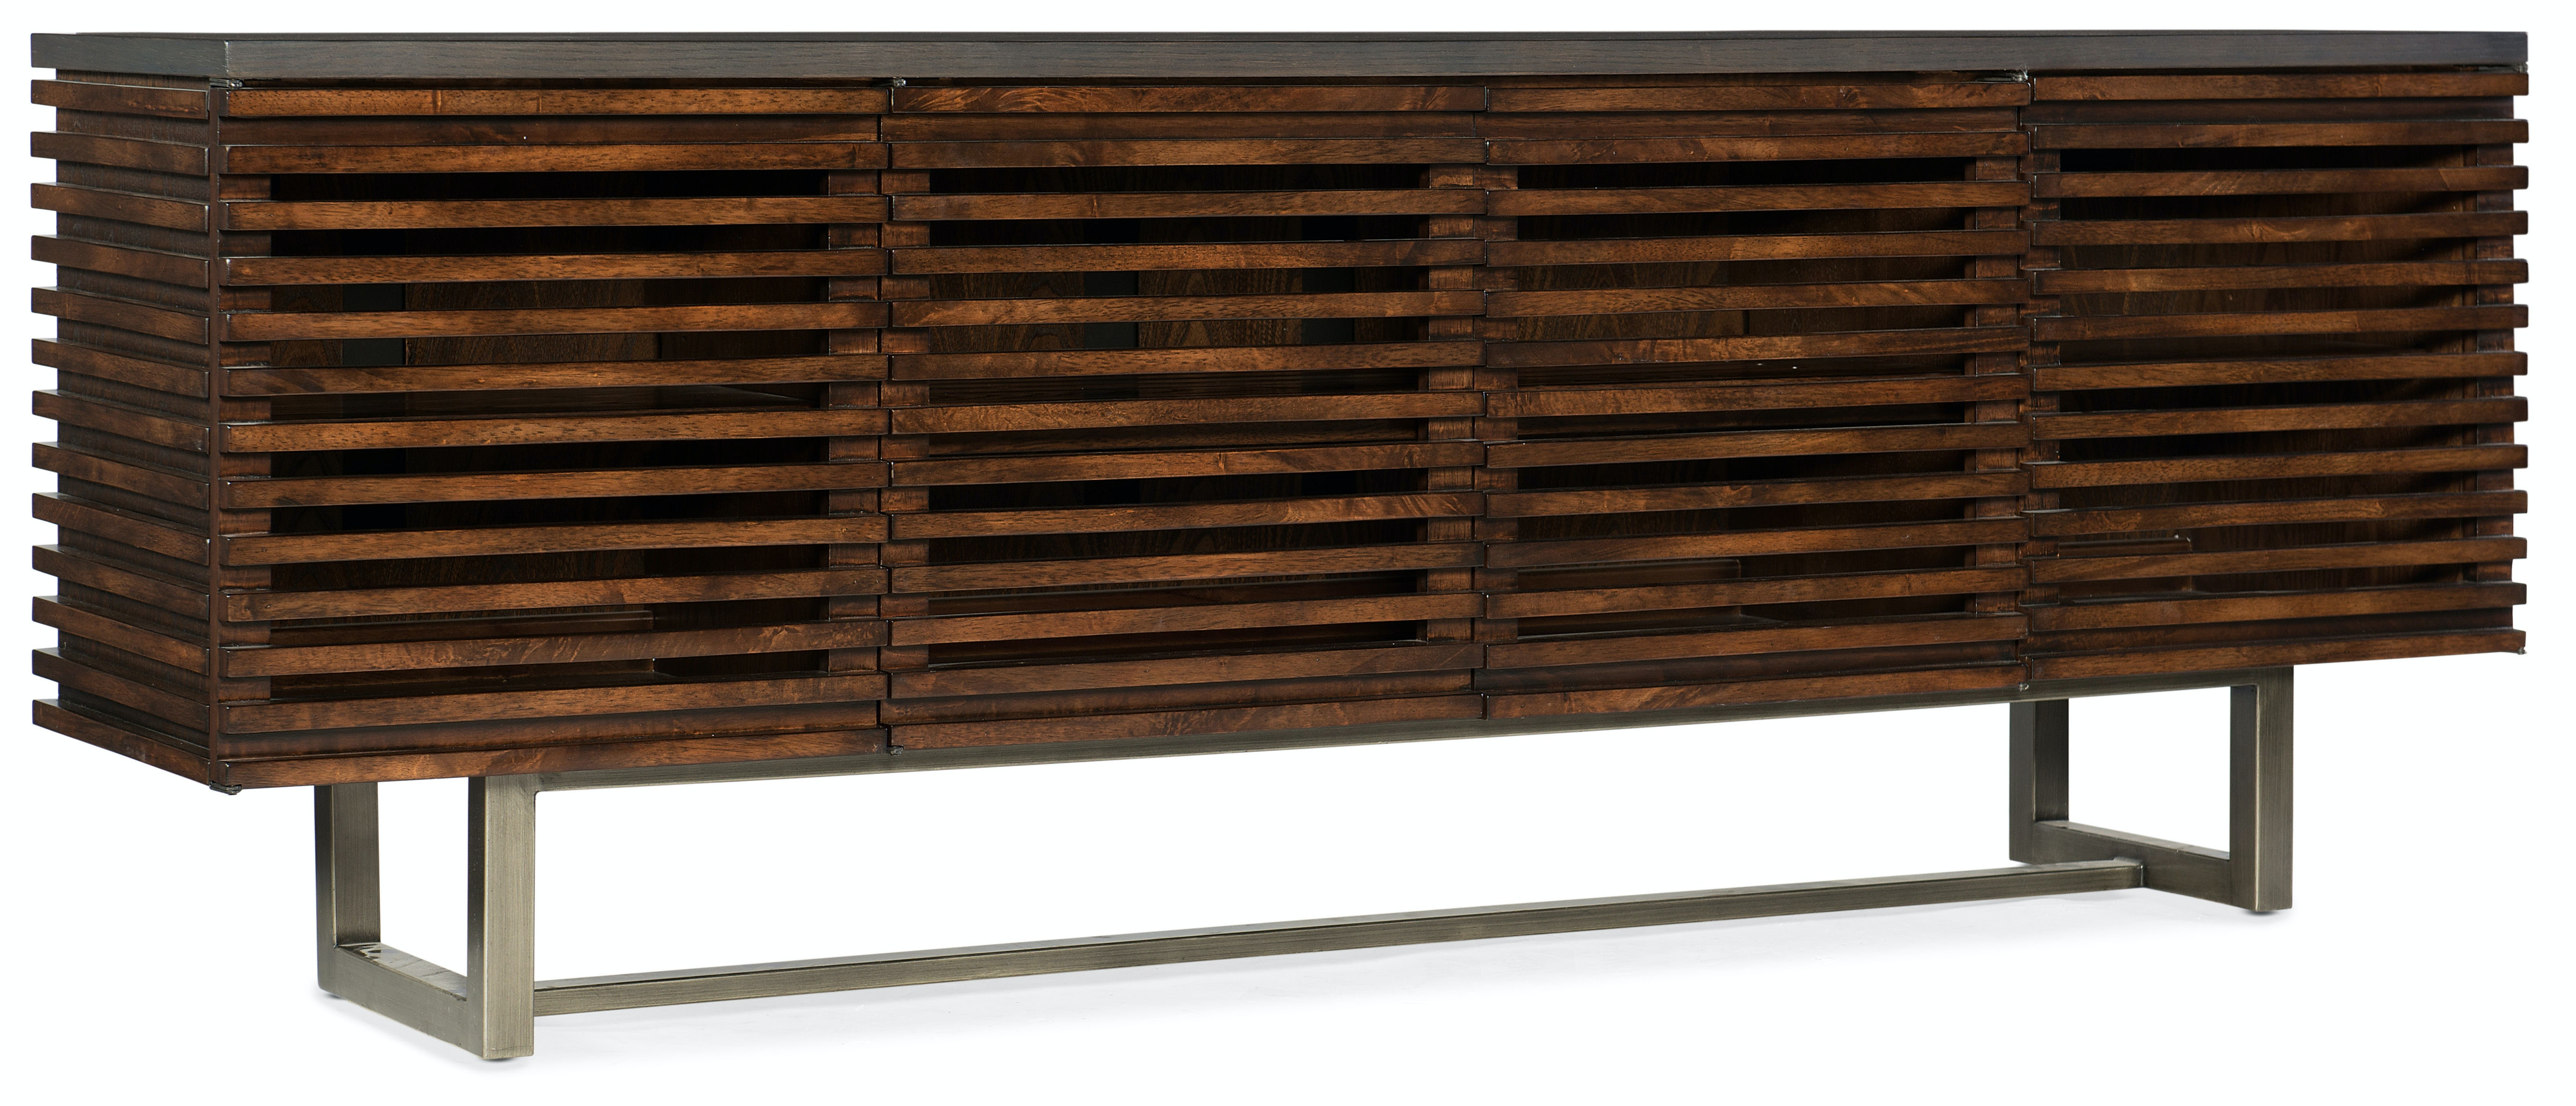 Hooker Furniture Solstice 78in Entertainment Console 5657 55478 MWD